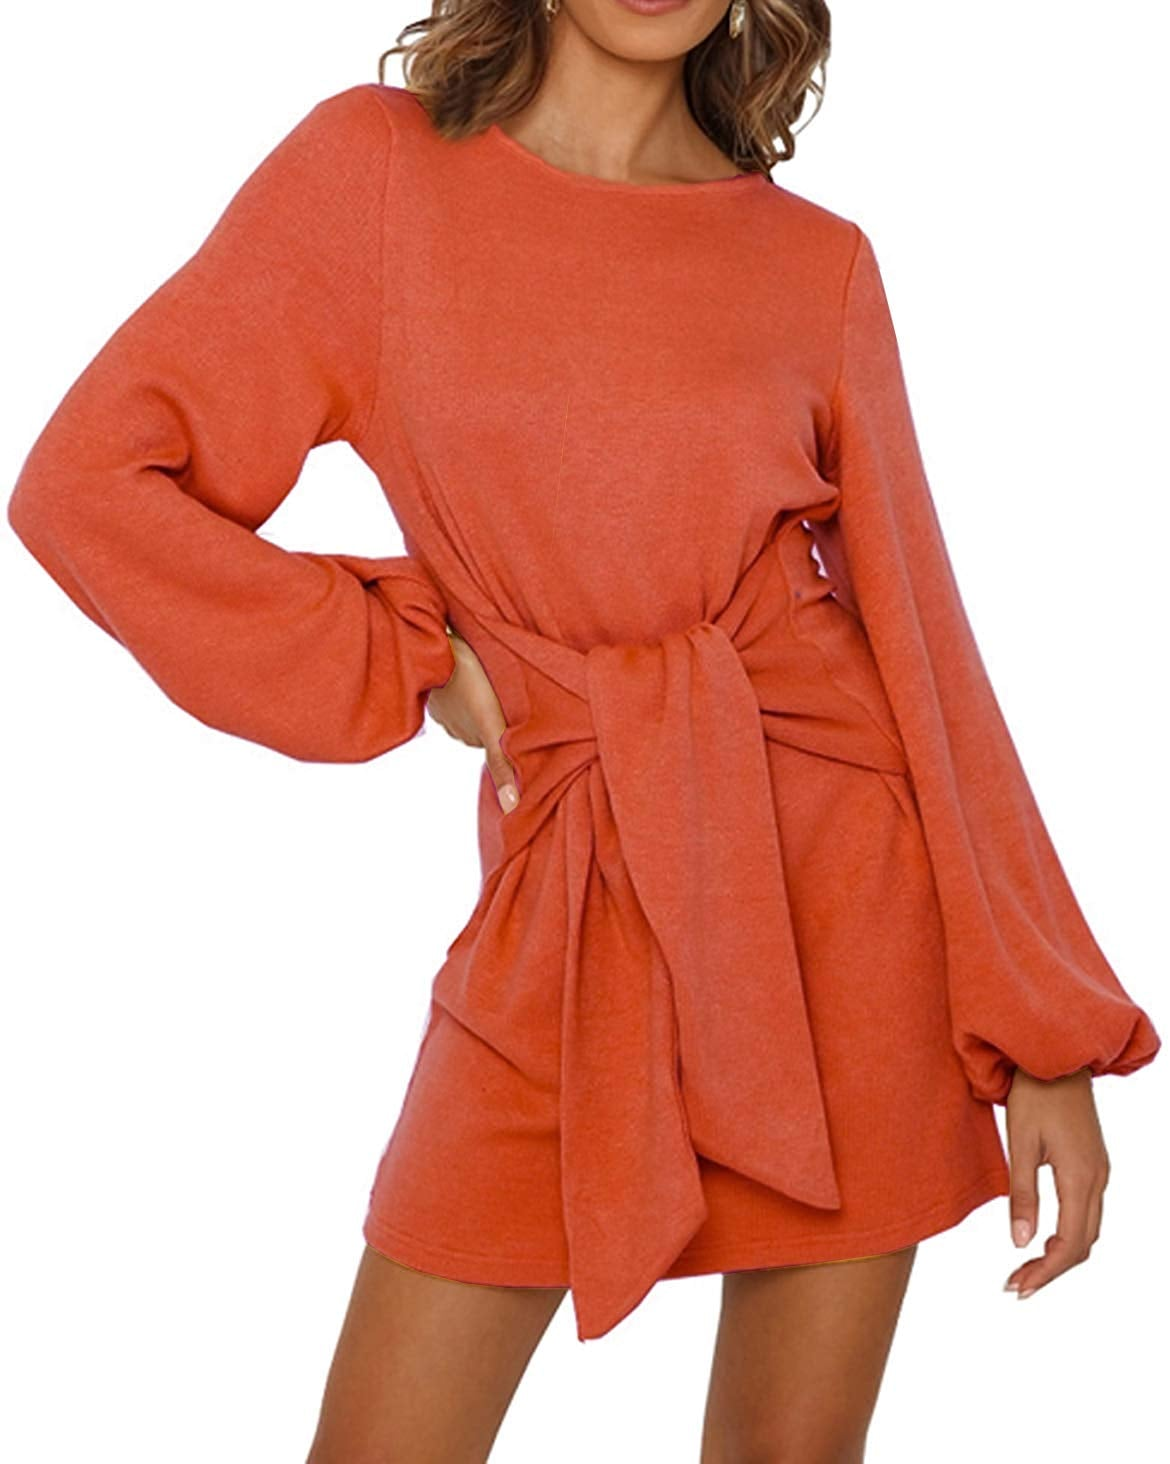 R Vivimos Knitted Tie Waist Sweater Dress These 26 Dresses From Amazon Fashion Are Versatile Flattering And All Under 50 Popsugar Fashion Photo 4